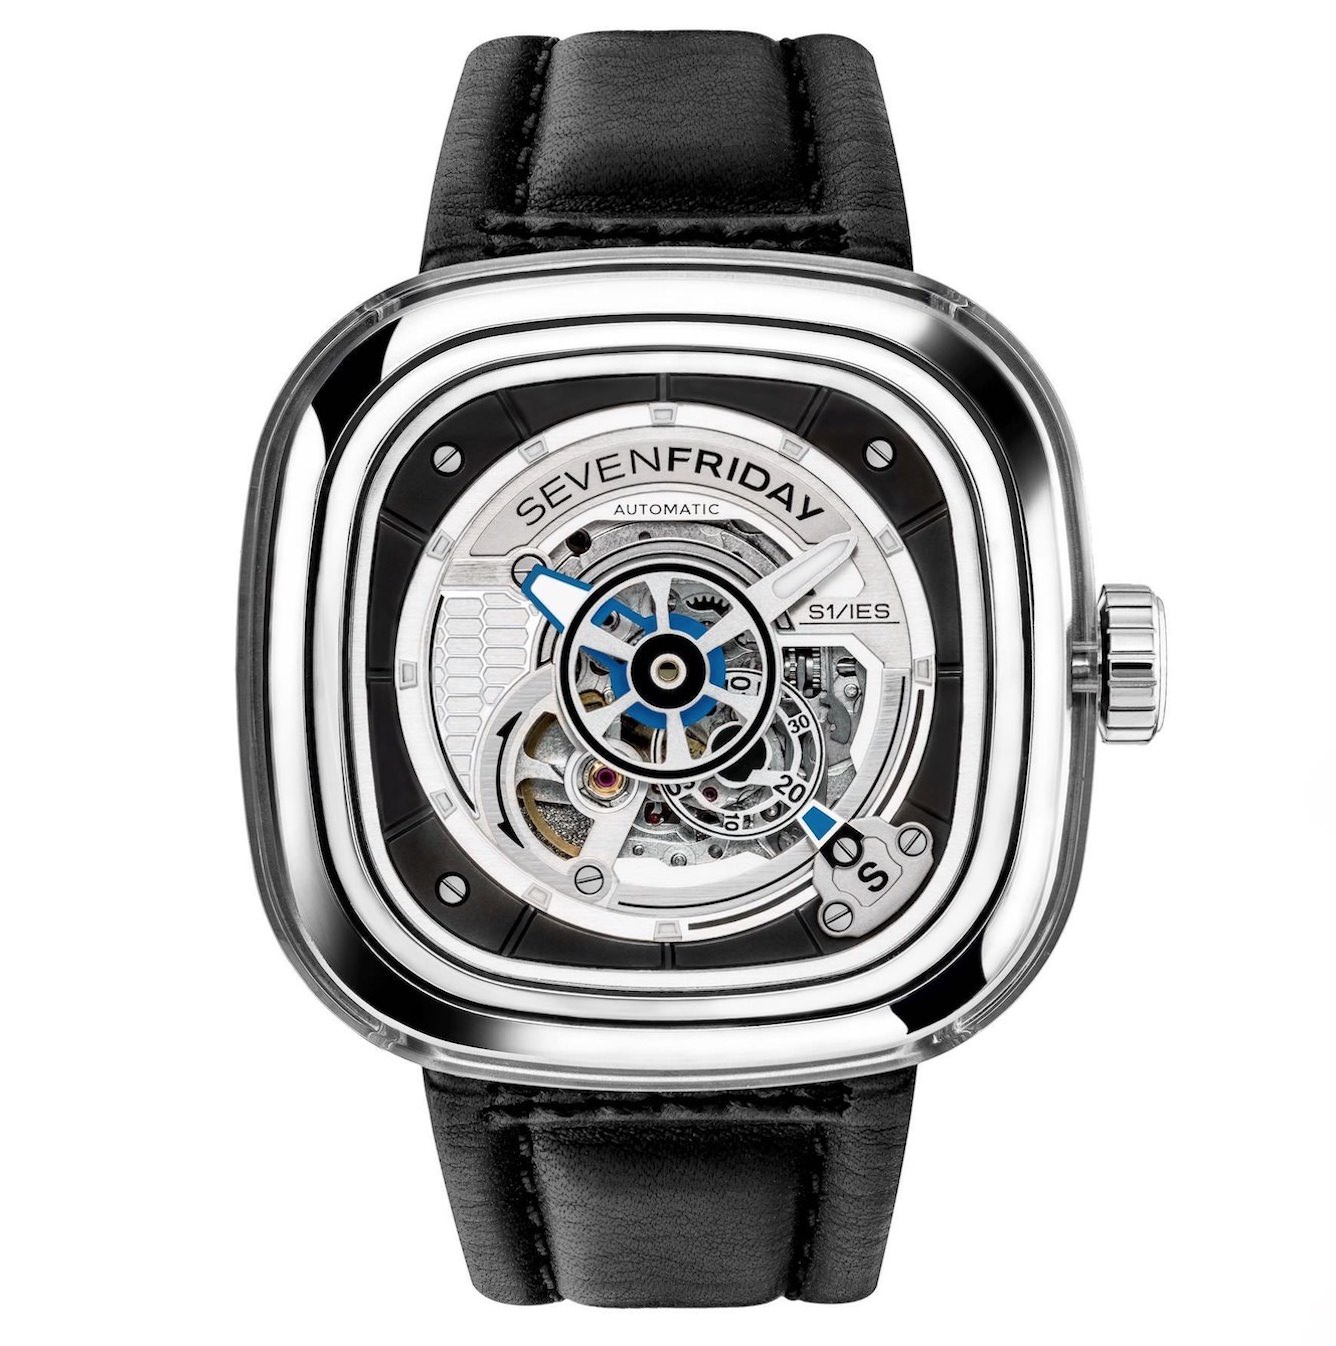 Die Sevenfriday S1-01